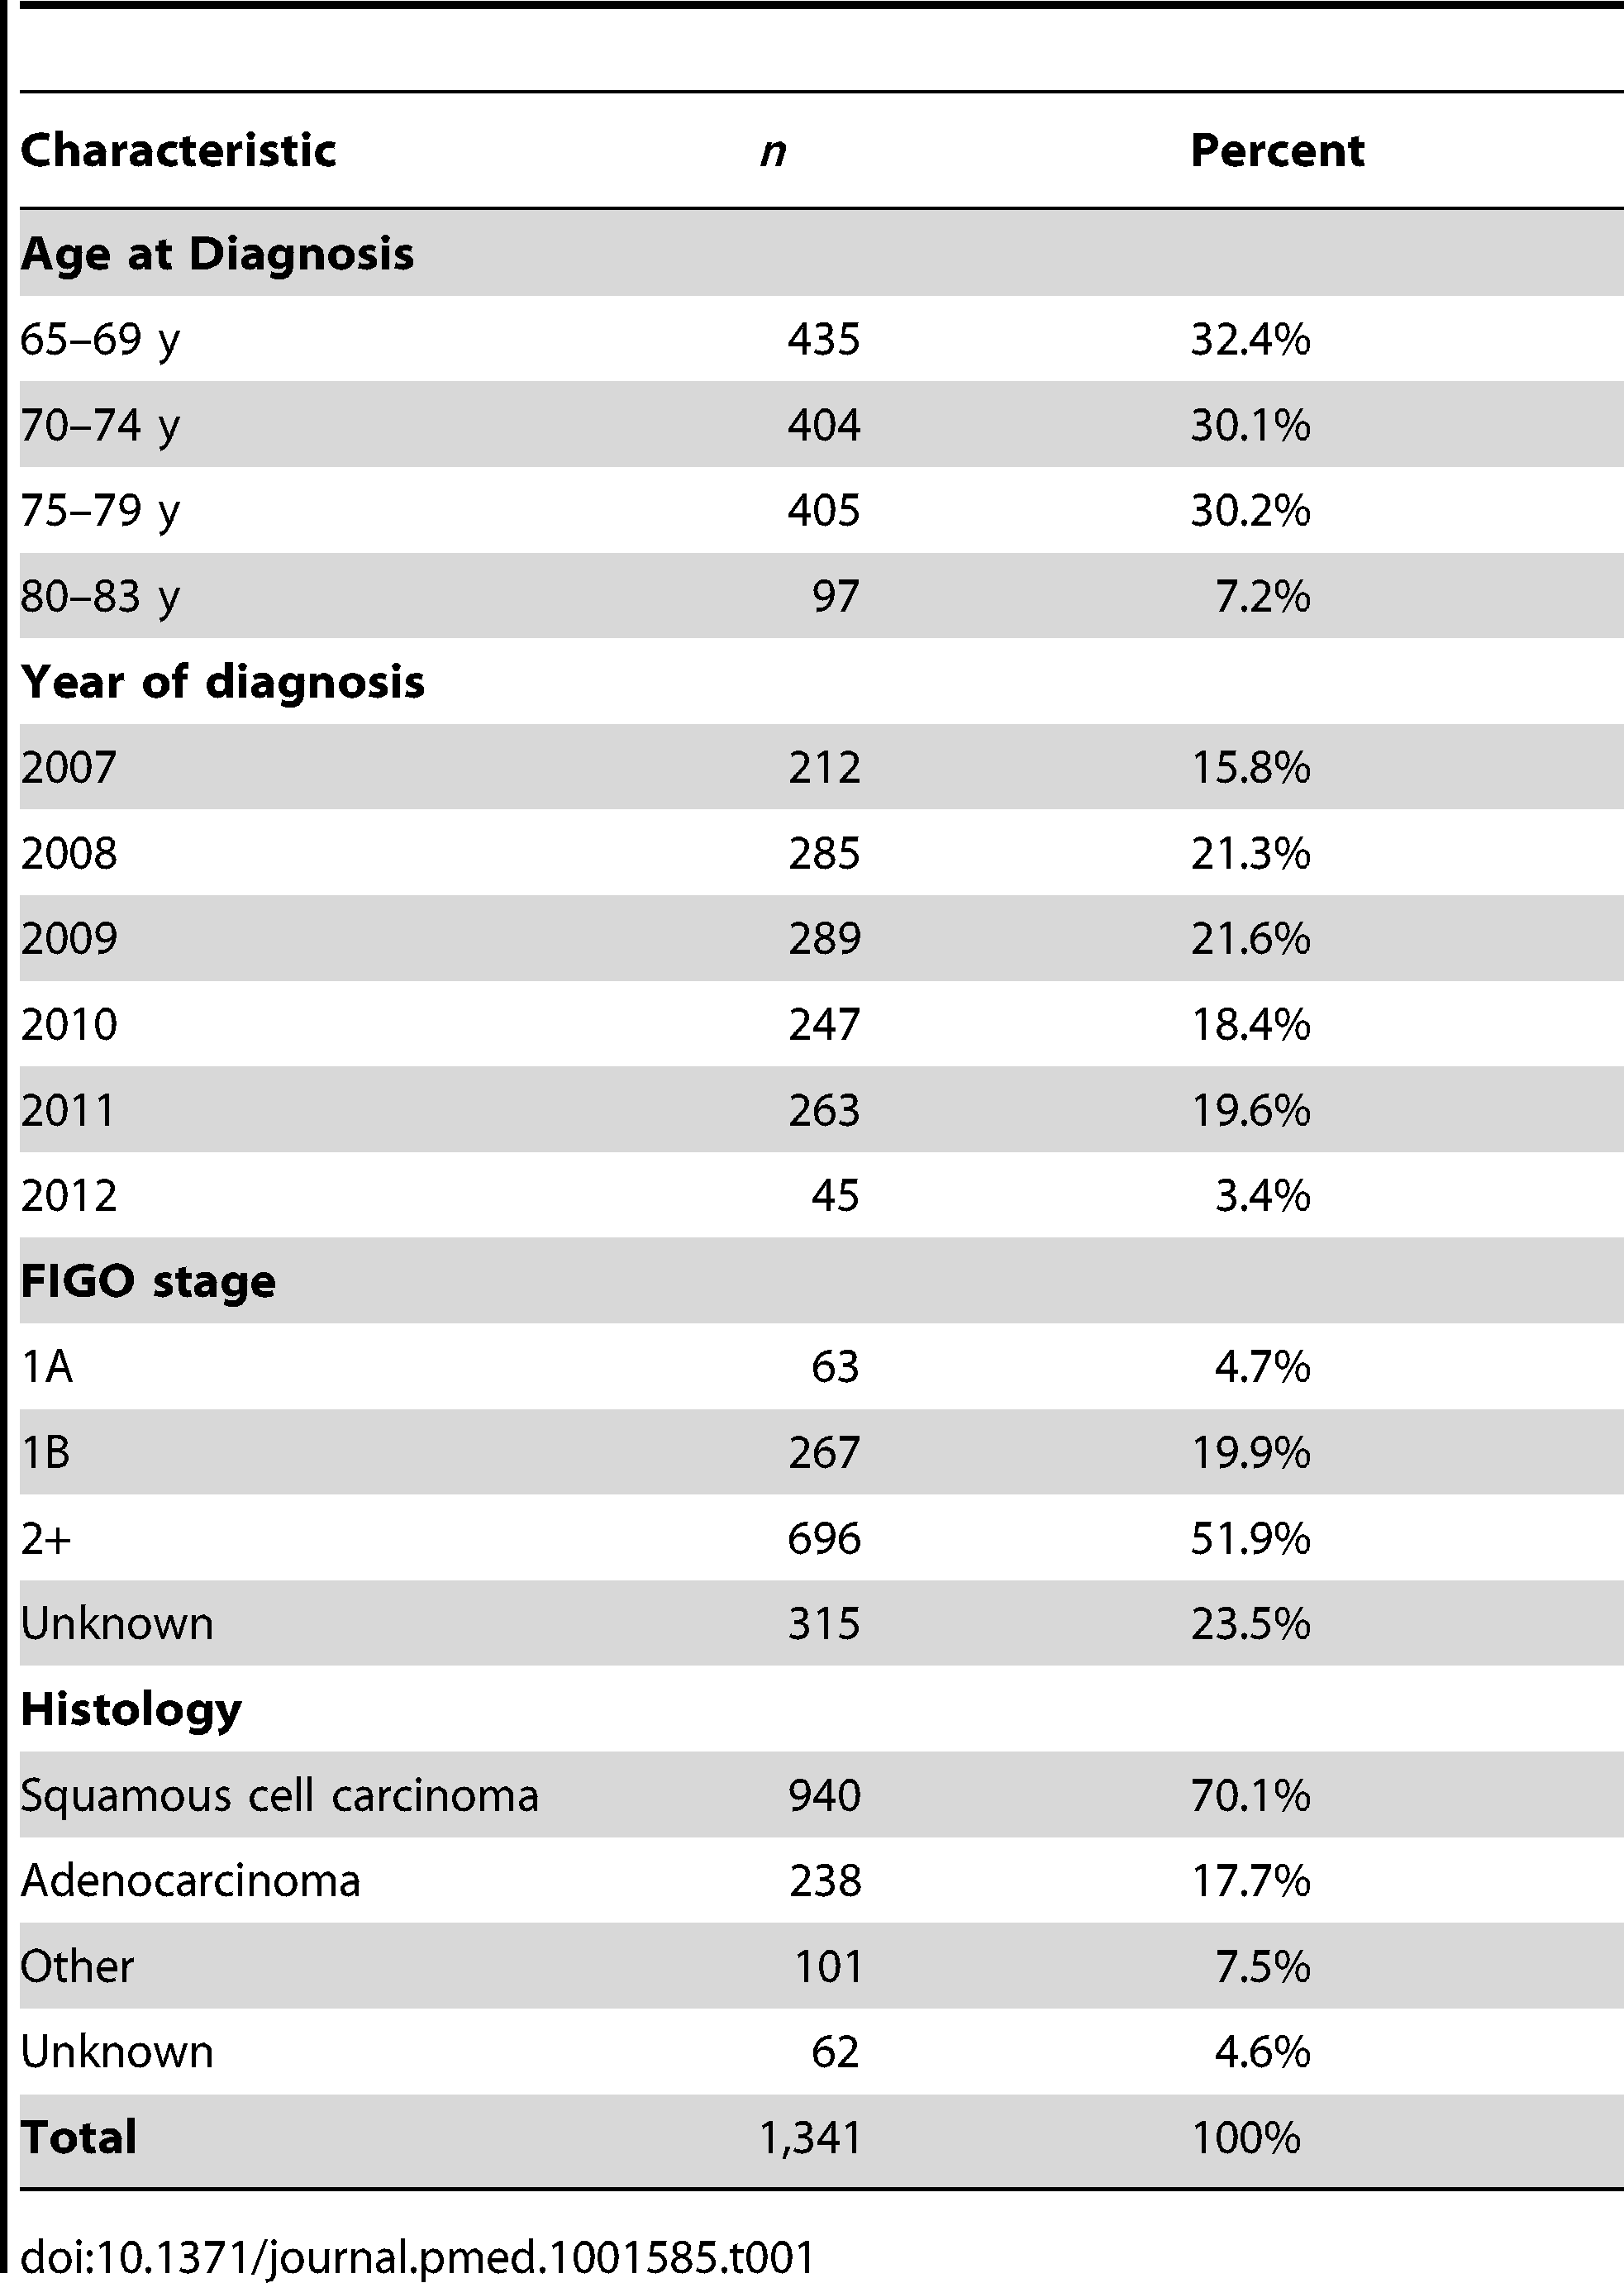 Number and percent of invasive cervical cancer cases by age, year of diagnosis, FIGO stage, and histology.